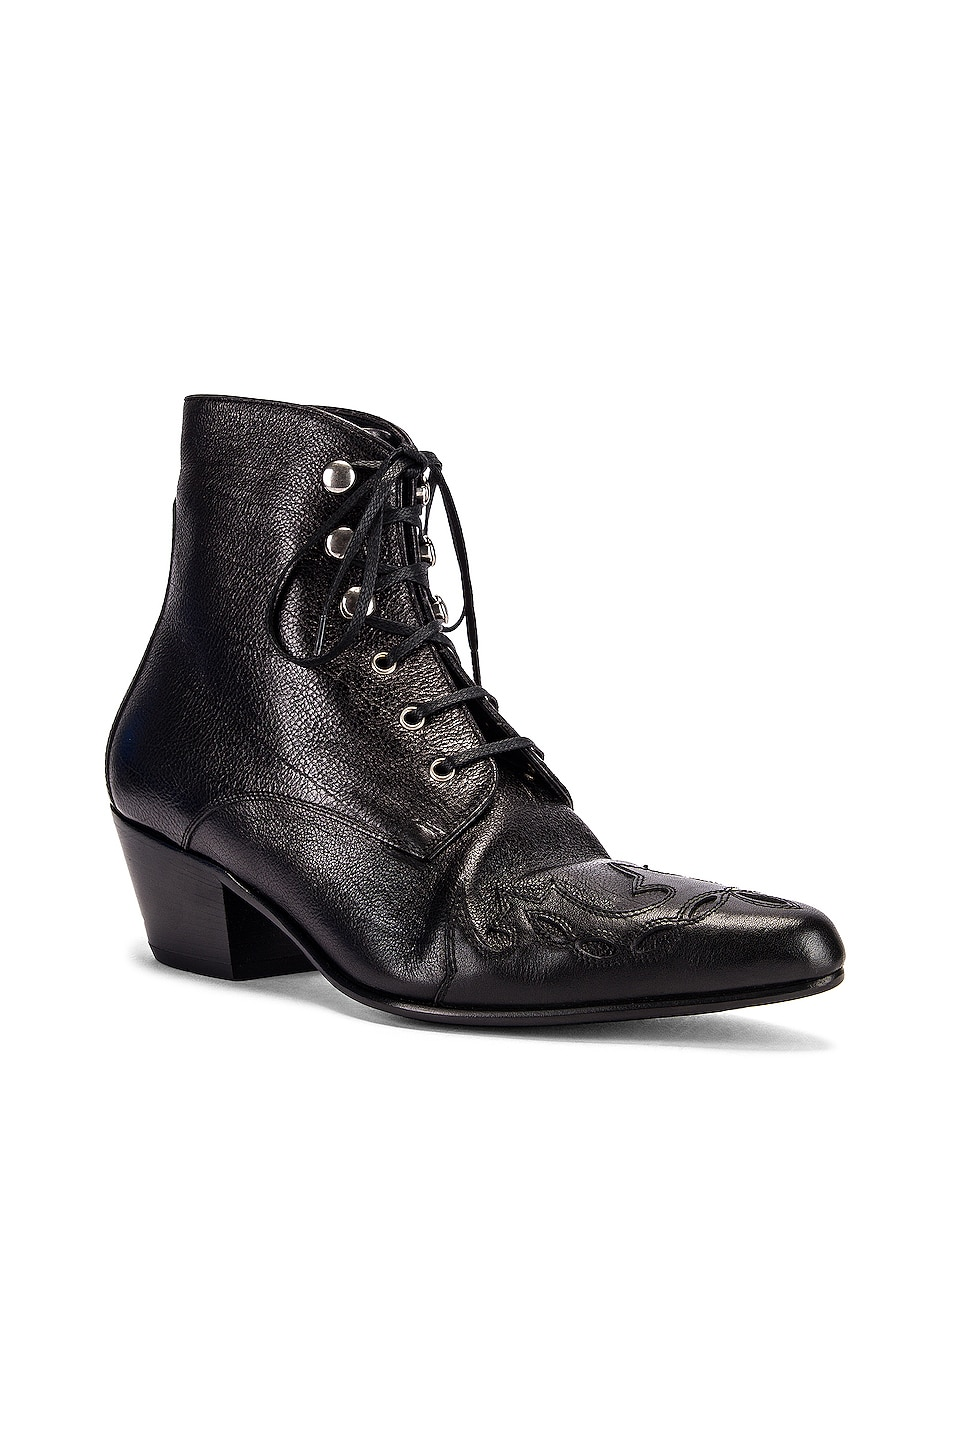 Image 2 of Saint Laurent Rebecca Lace Up Booties in Black